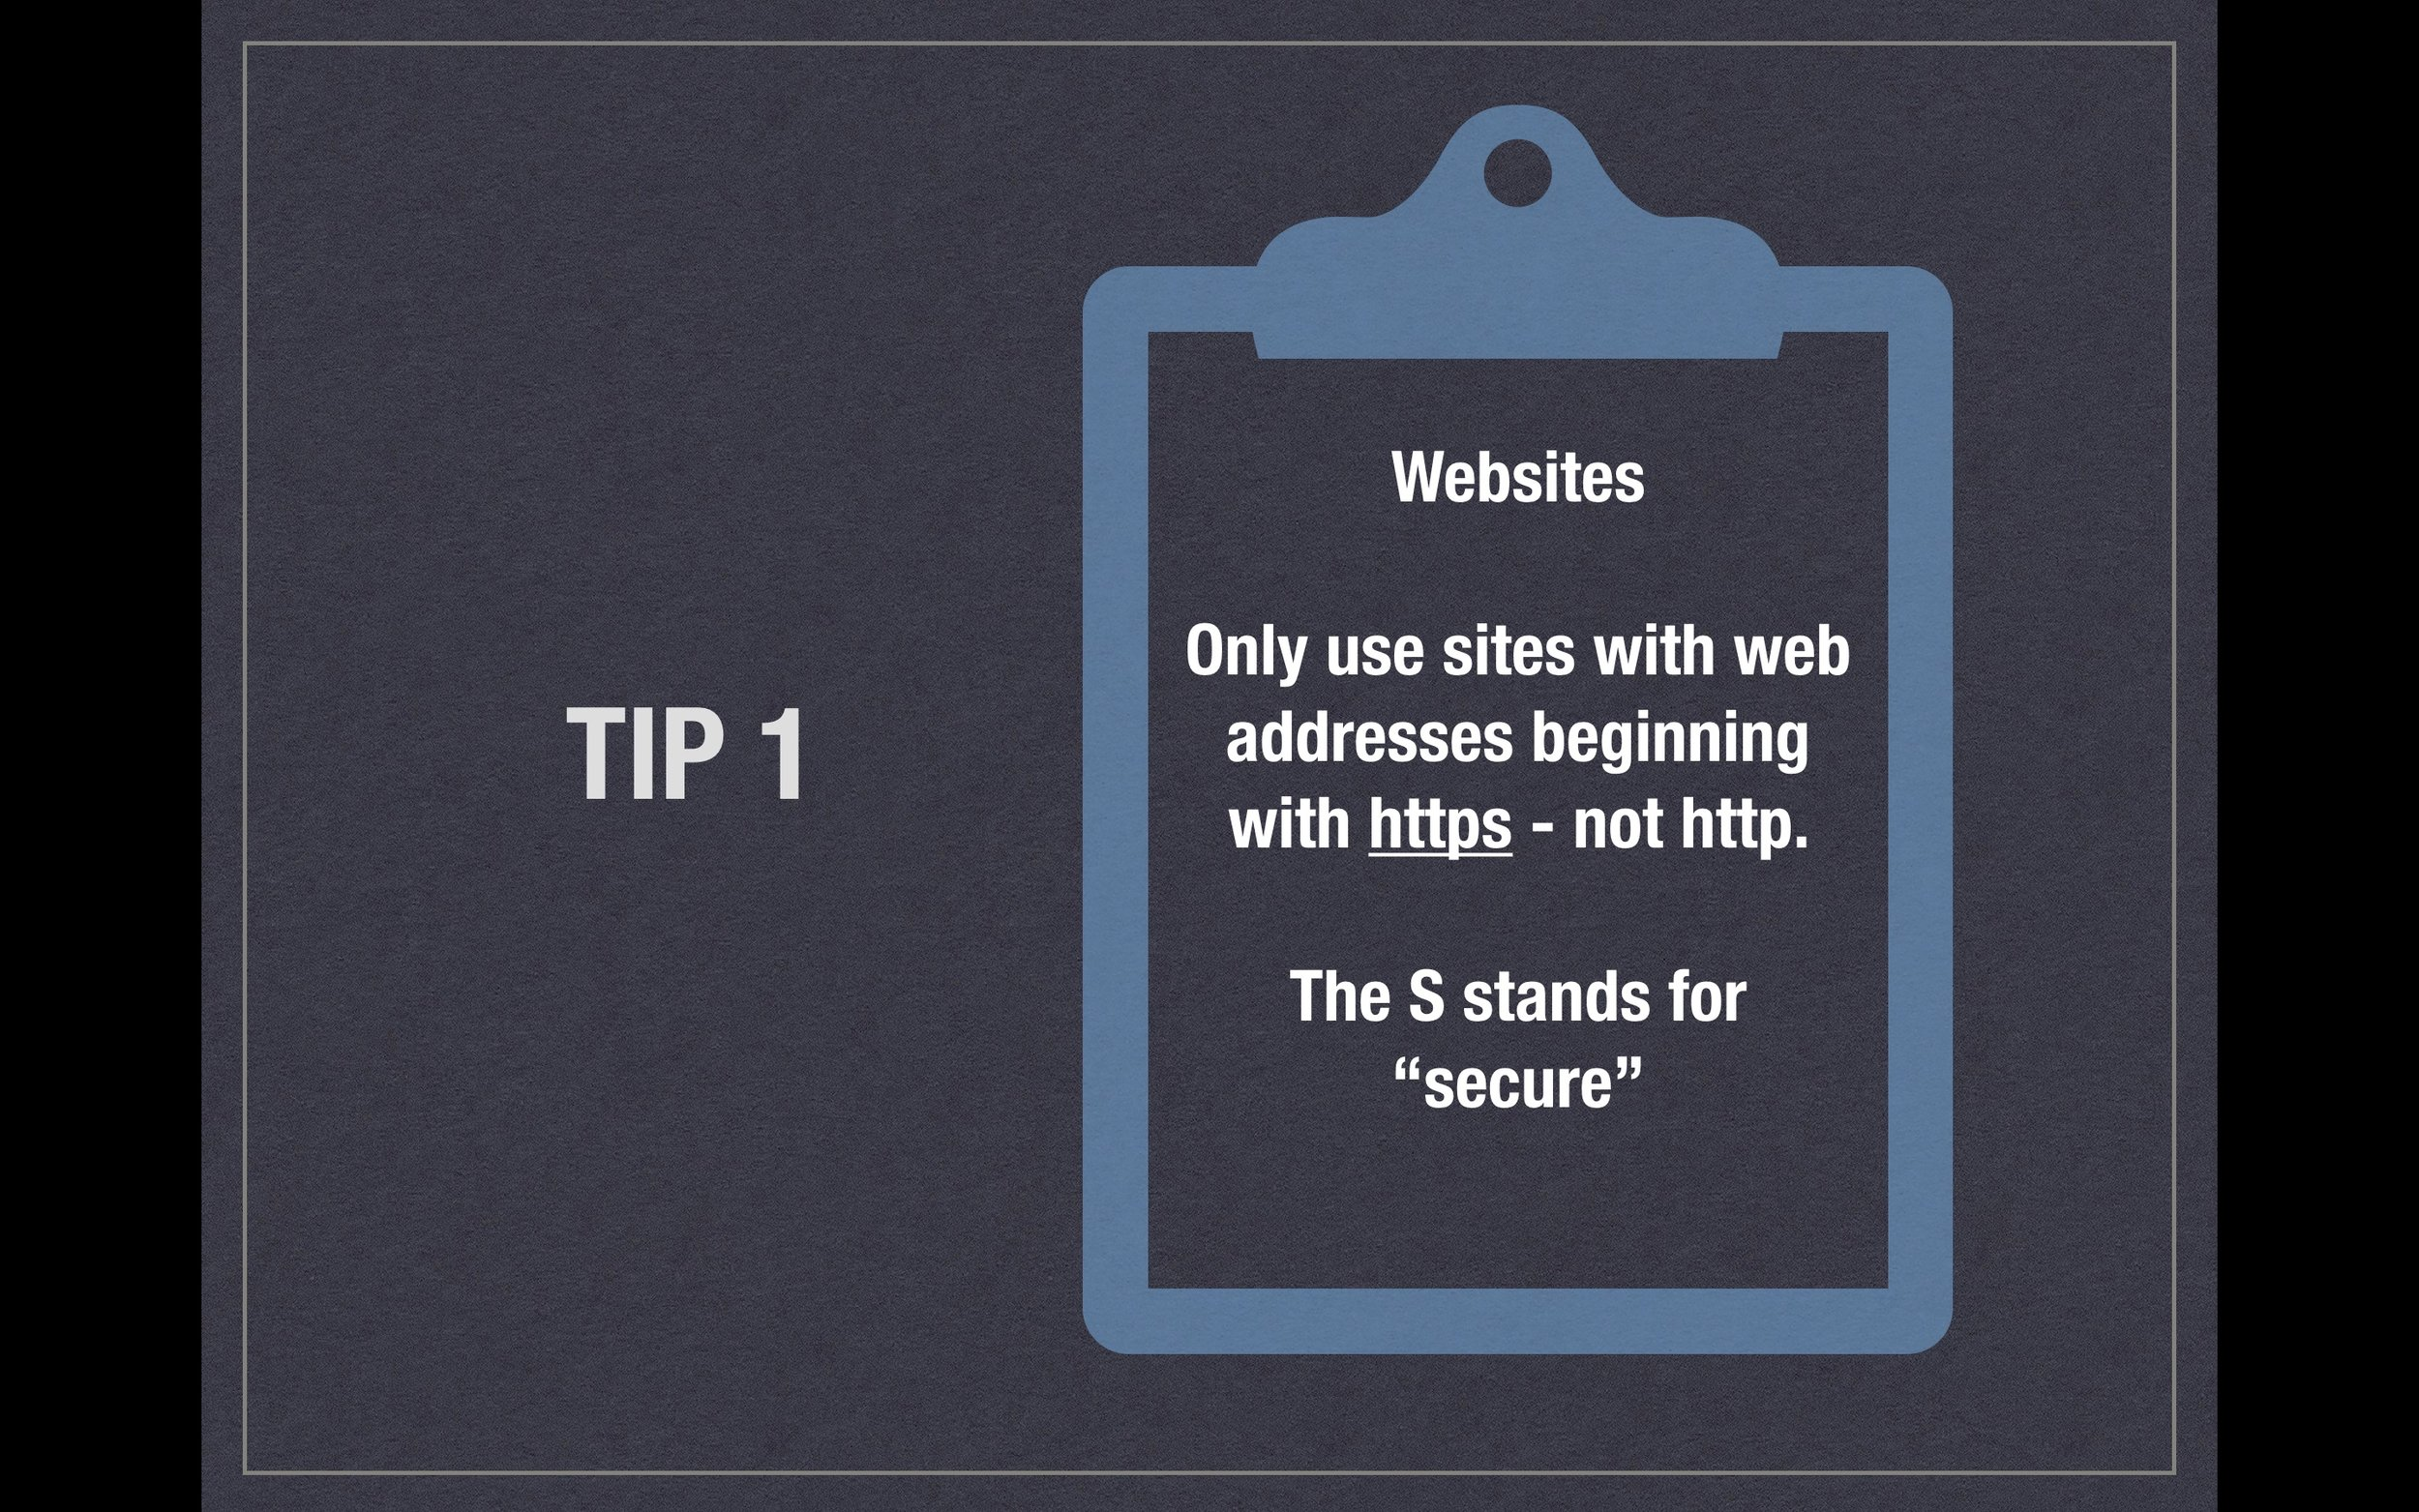 """Tip 1 - Websites - Only use sites with web addresses beginning with https not http. The S stands for """"secure"""""""